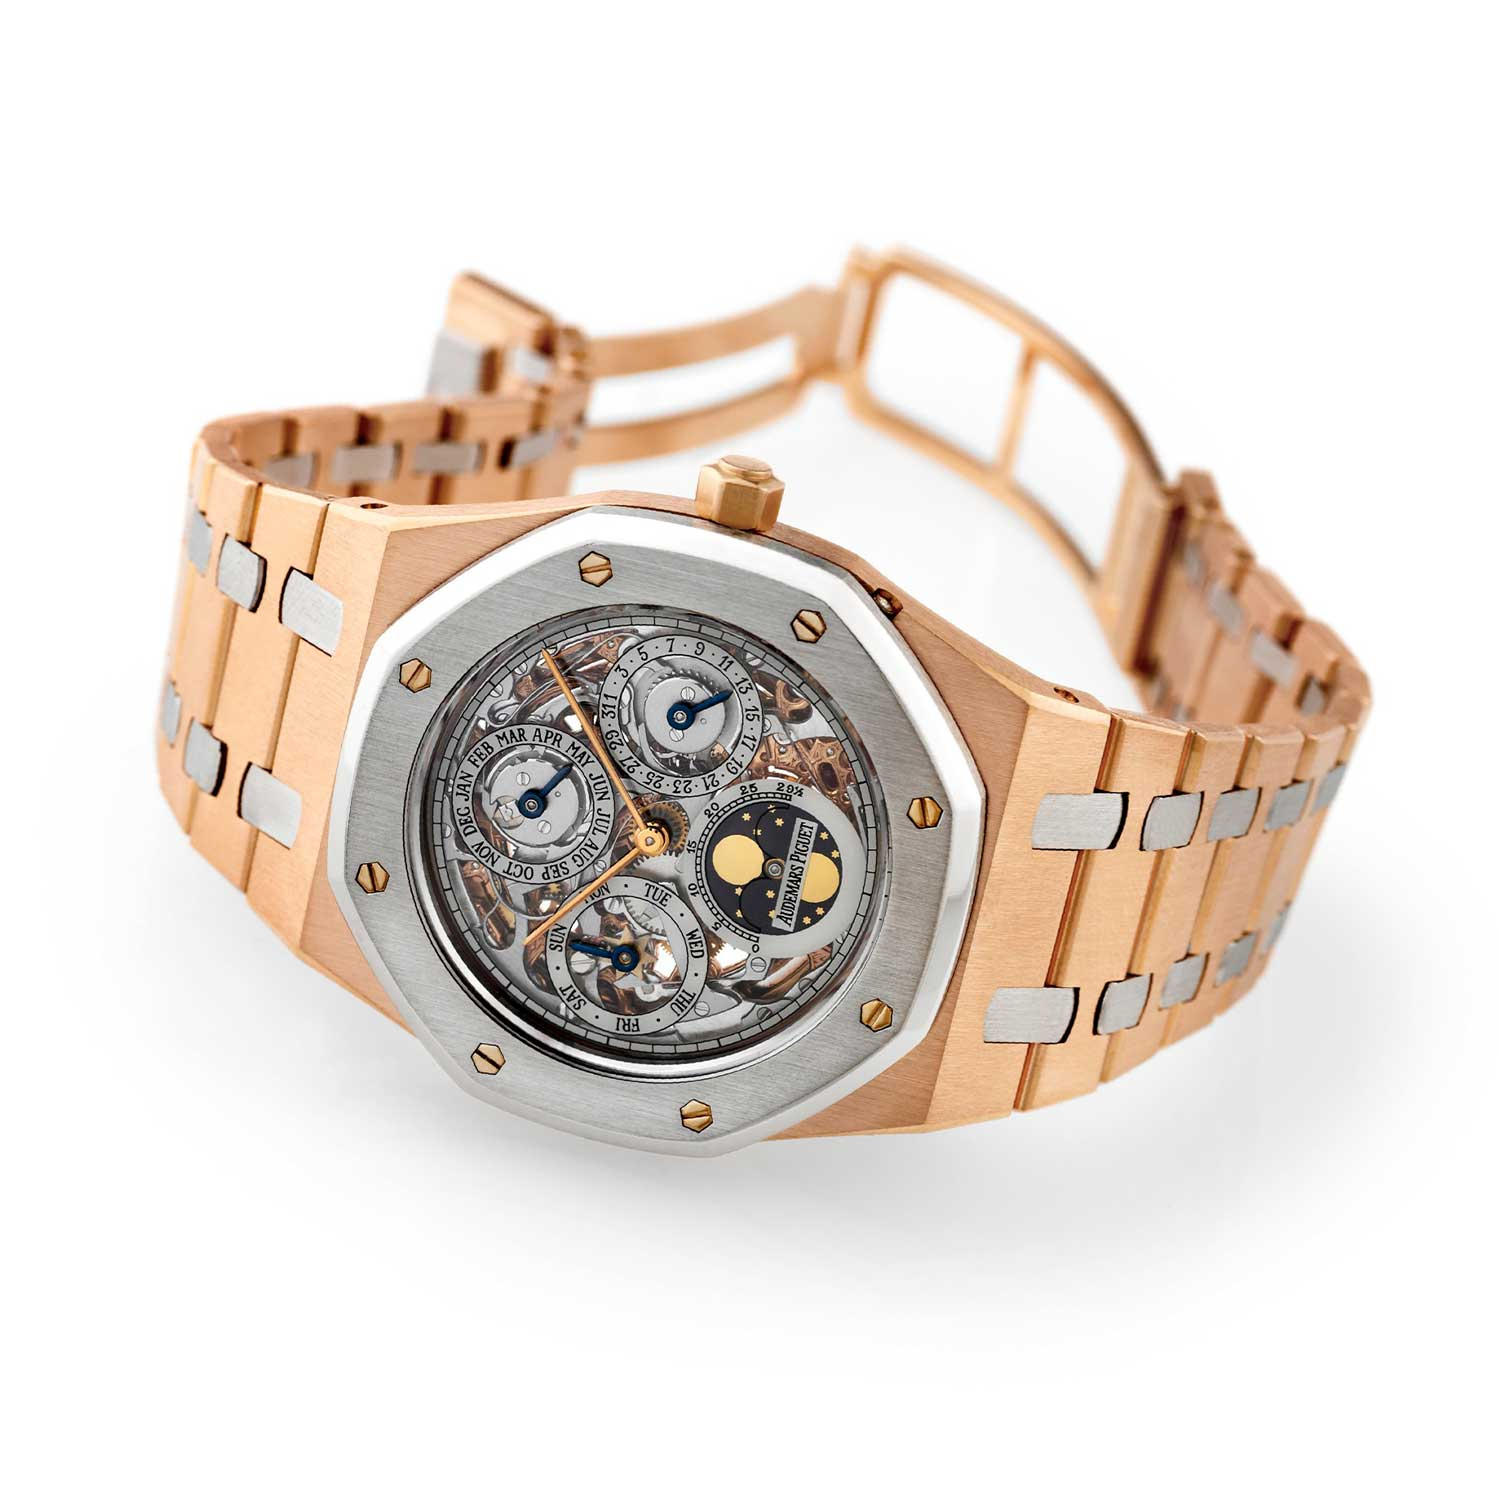 Audemars Piguet Royal Oak Quantième Perpétuel Automatique, ref. 25636RP, made in a limited edition of only 25 pieces in 1993, sold in 1995; case and bracelet in an alternated combination of 18K pink gold and platinum (Image: antiquorum.swiss)